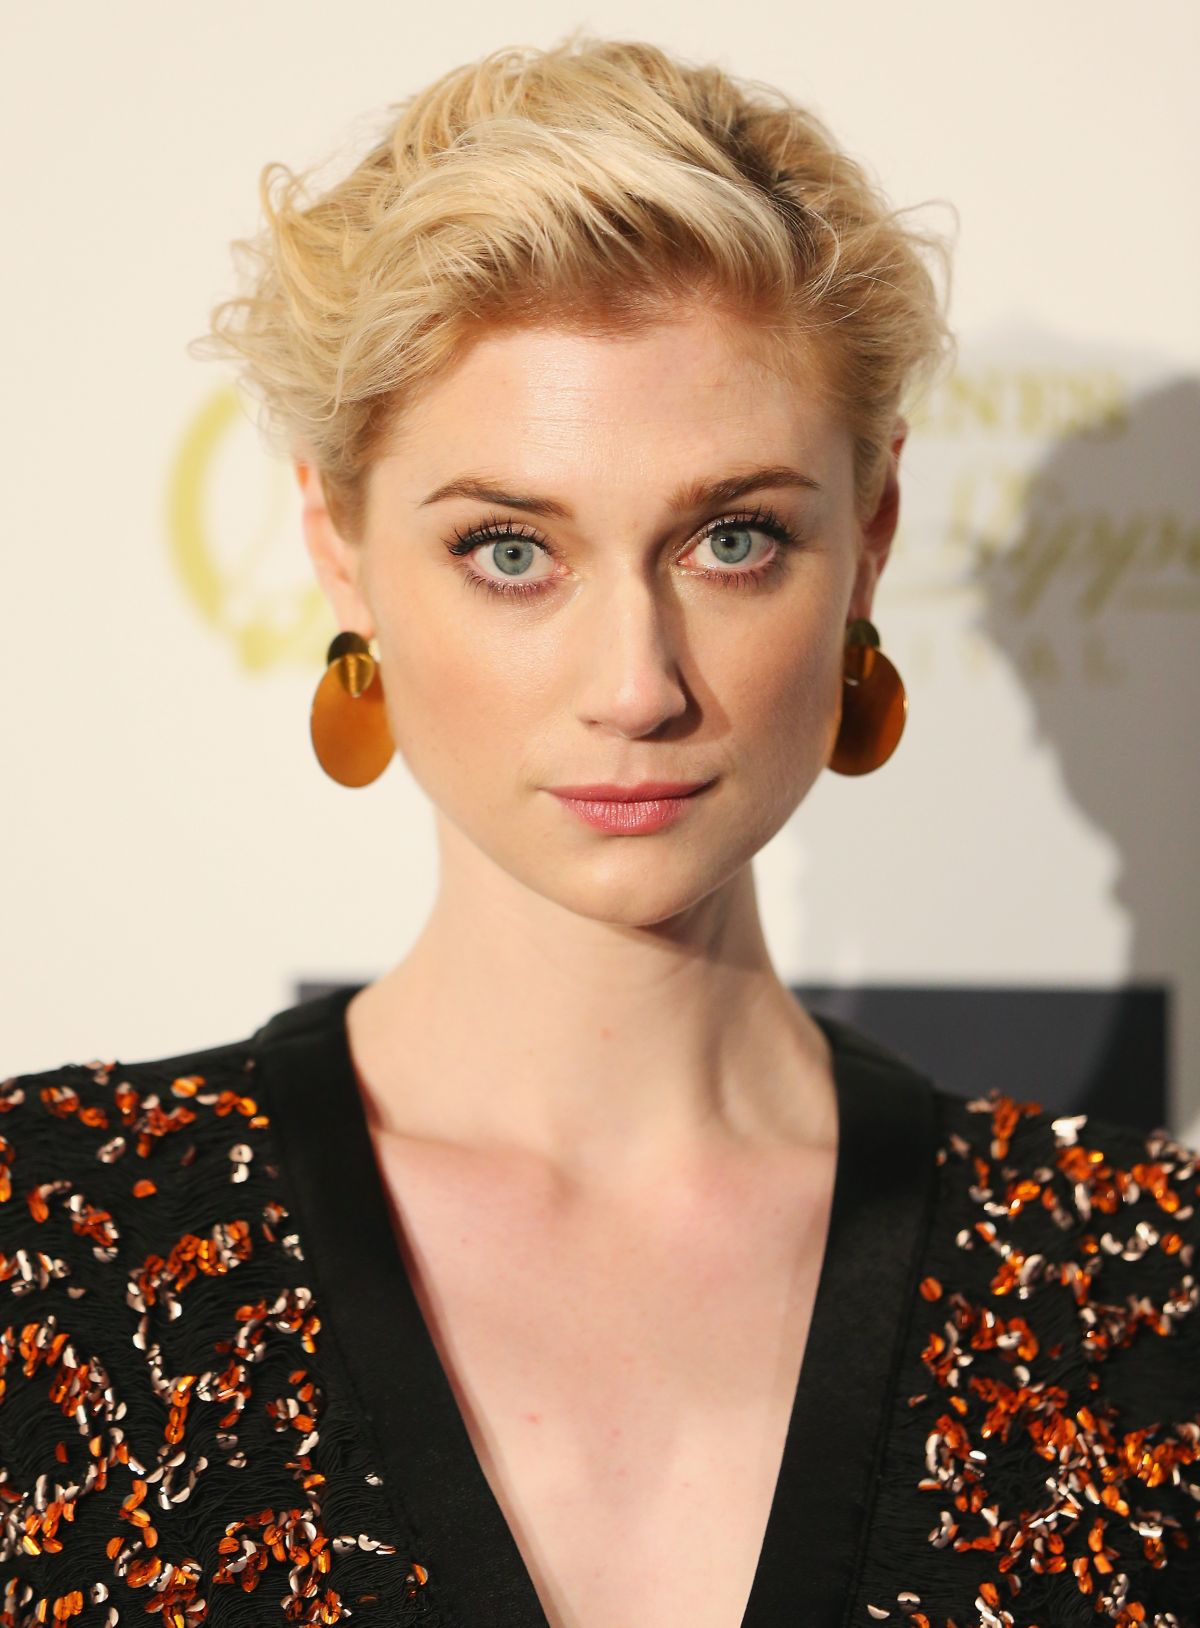 ELIZABETH DEBICKI at 2017 Longines Golden Slipper Barrier Draw 03/14/2017